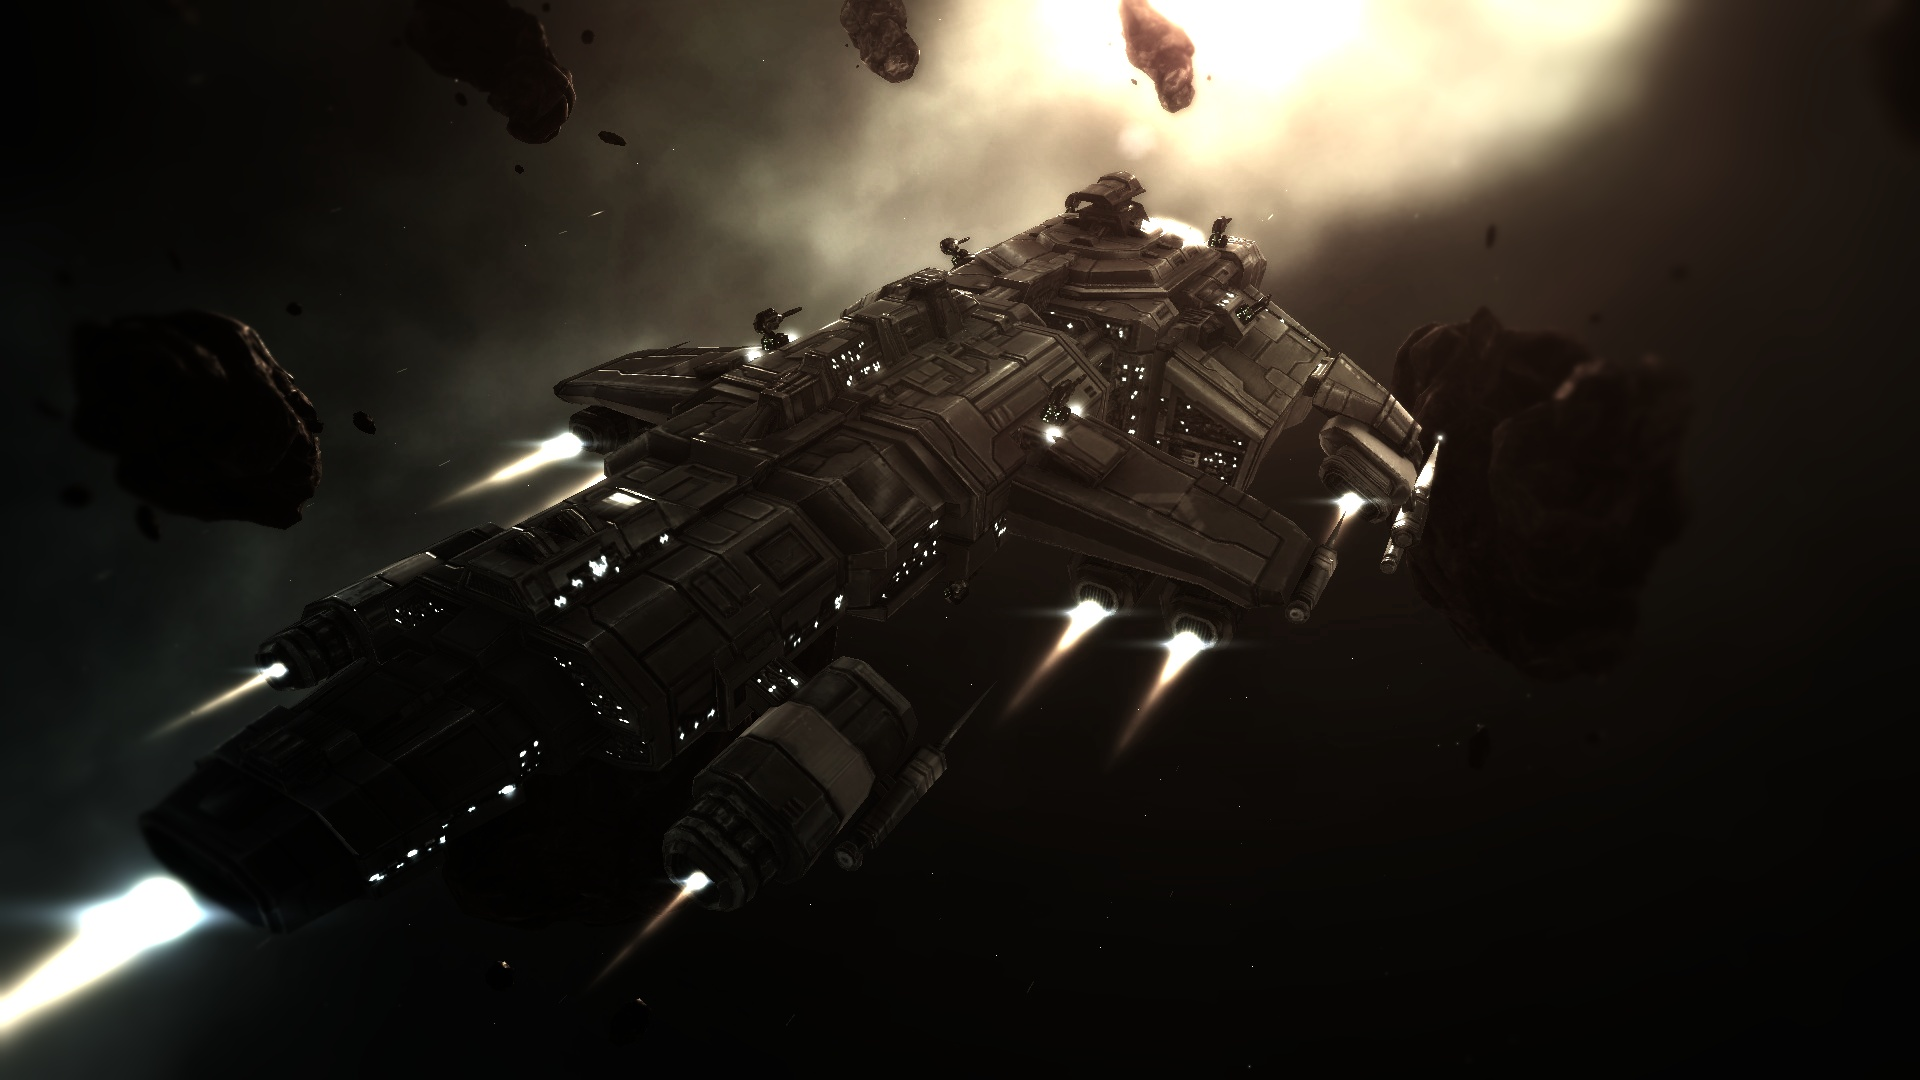 Space battleship from the game Eveonline 1920x1080